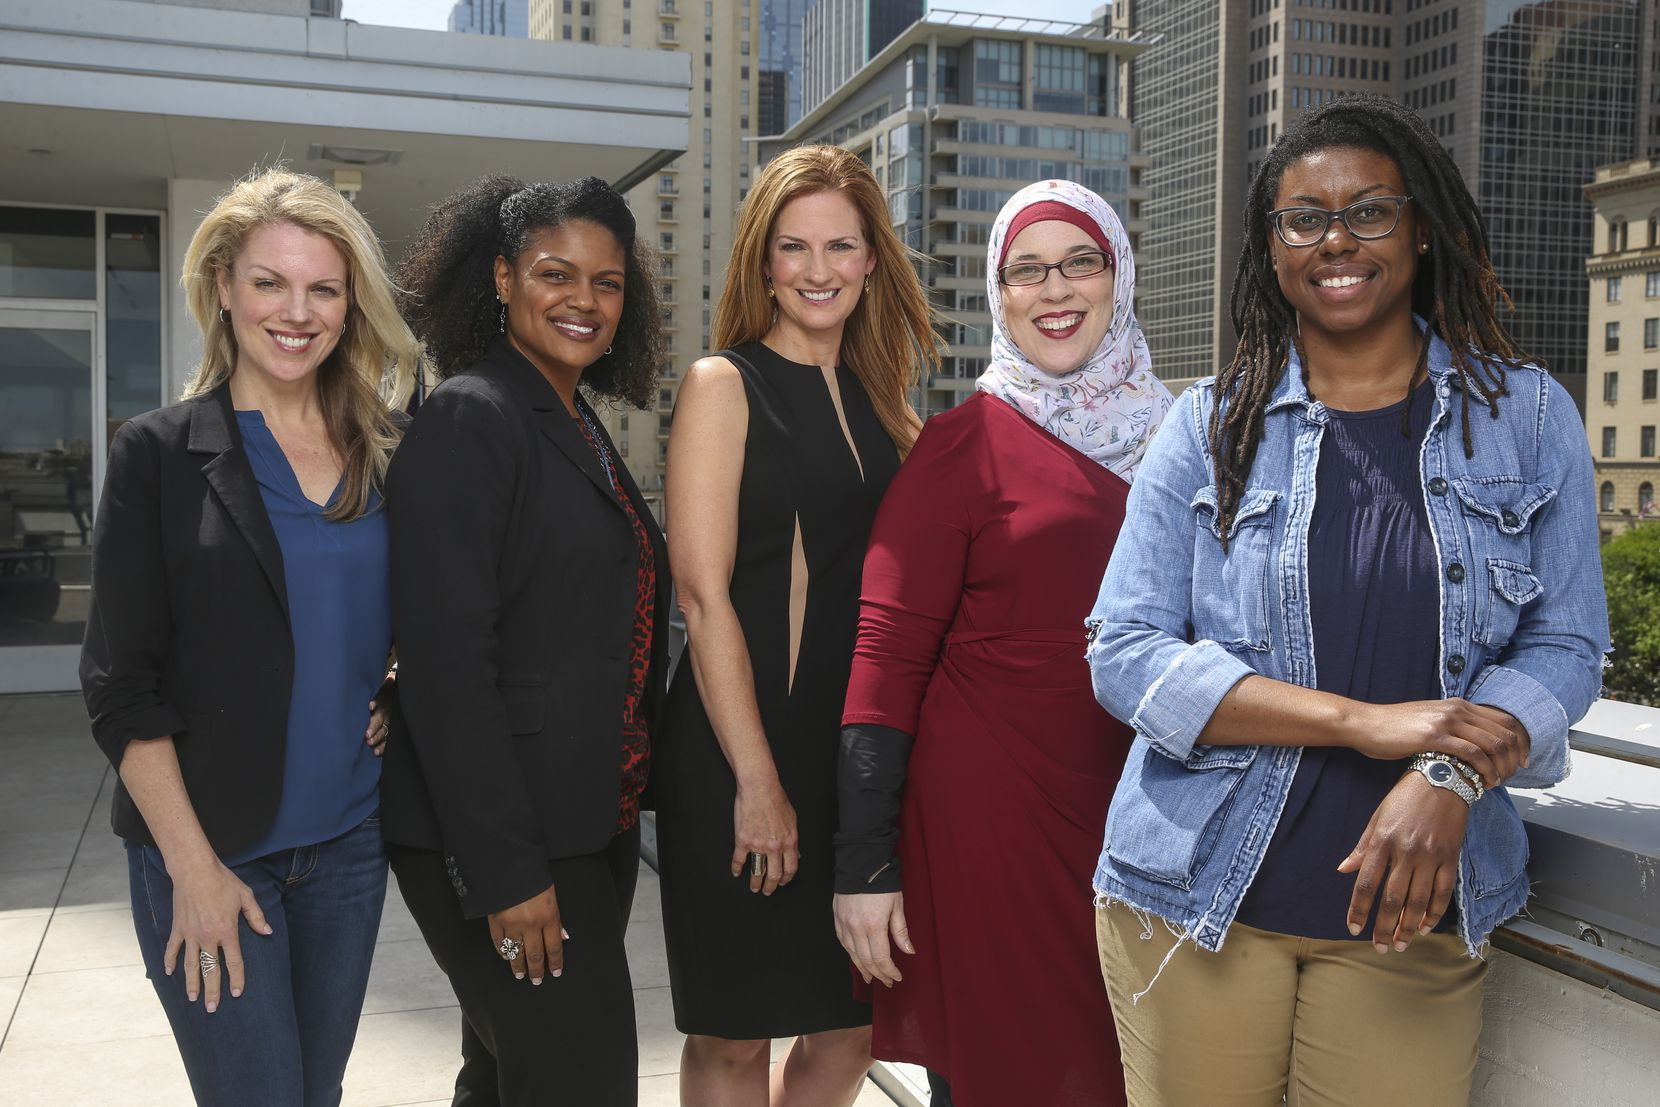 From left: Anna Clark, Yulise Waters, Michelle Kinder, Alia Salem and Joli Robinson are the peer coaches for the 2019 Public Voices project in Dallas.